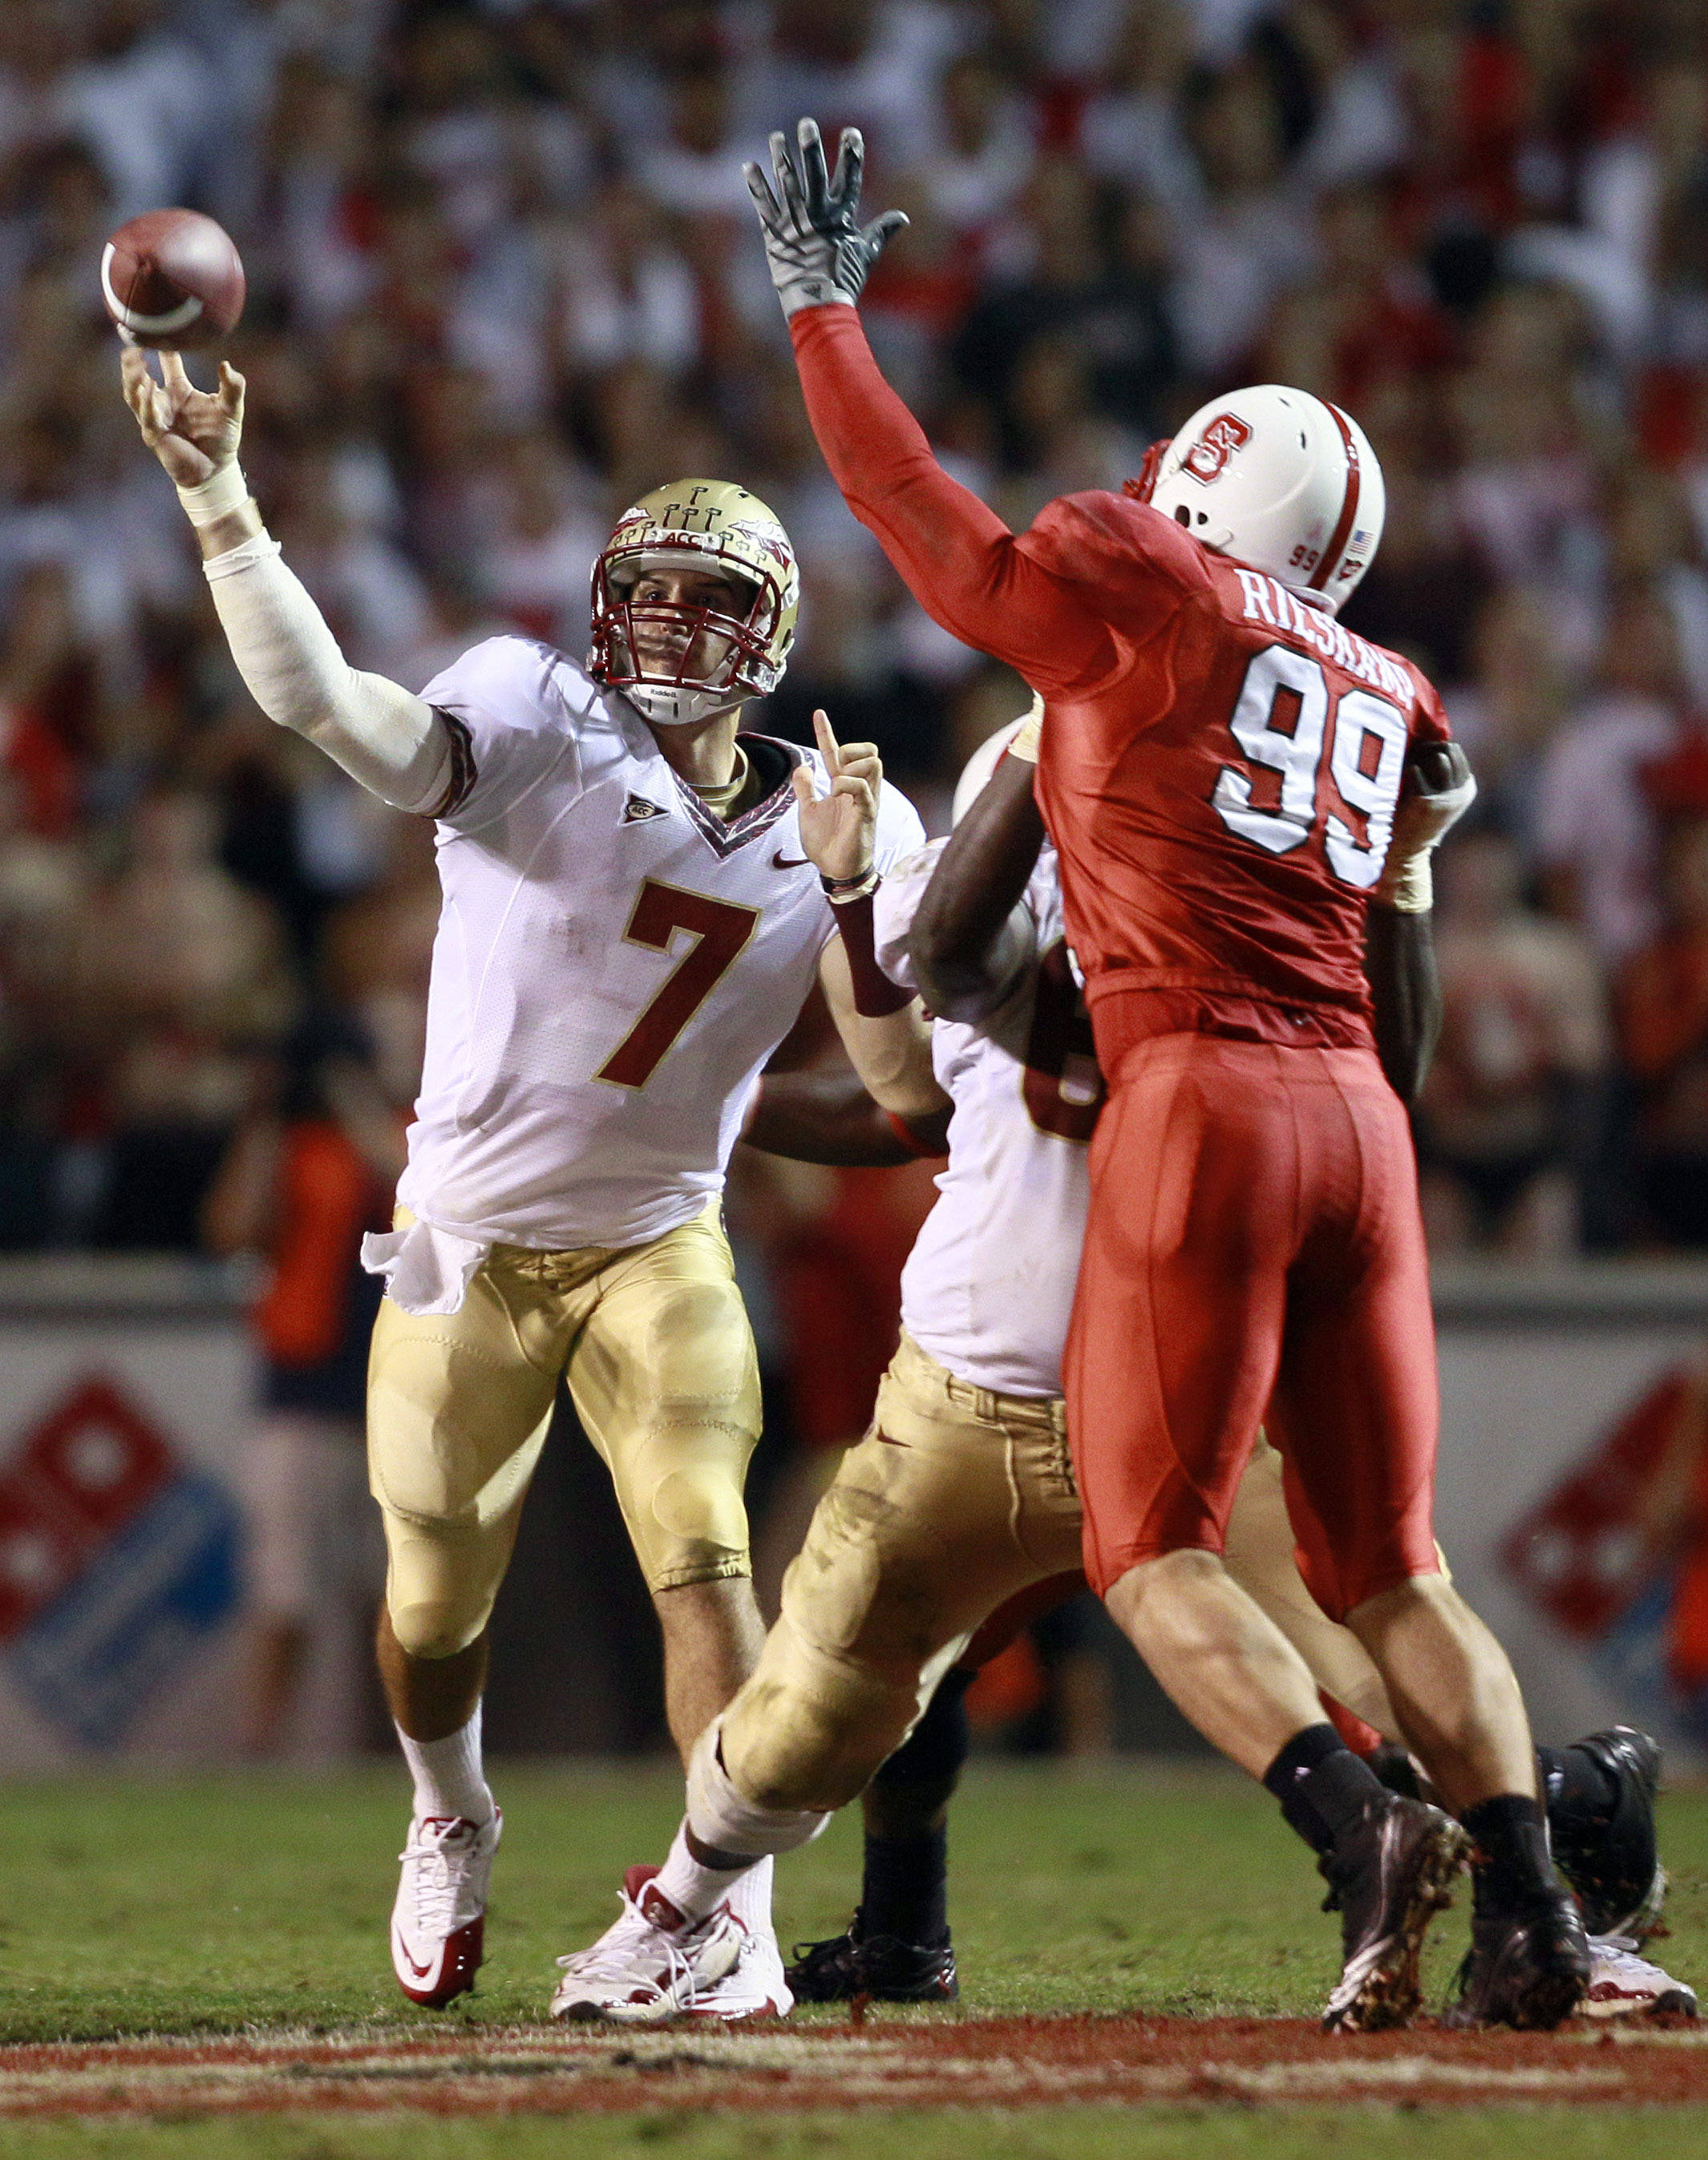 Florida State quarterback Christian Ponder (7) passes as North Carolina State's Jeff Rieskamp (99) defends during the first half of an NCAA college football game in Raleigh, N.C., Thursday, Oct. 28, 2010. (AP Photo/Gerry Broome)